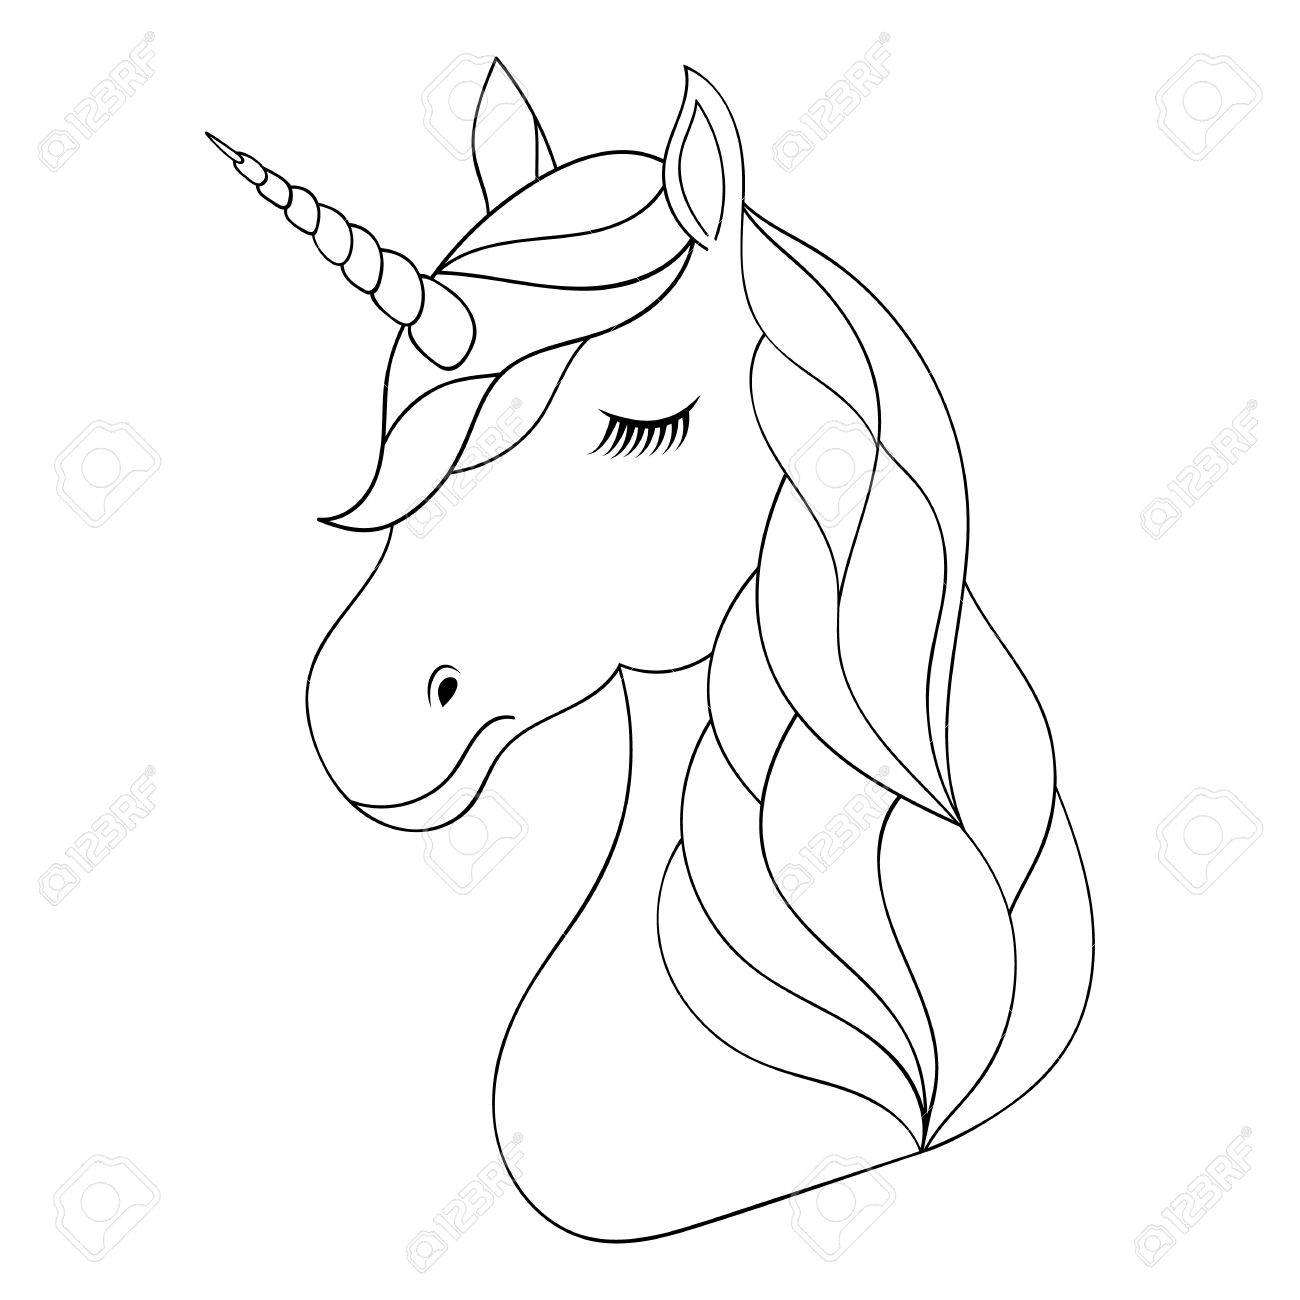 1300x1300 Head Of Hand Drawn Unicorn Royalty Free Cliparts, Vectors,